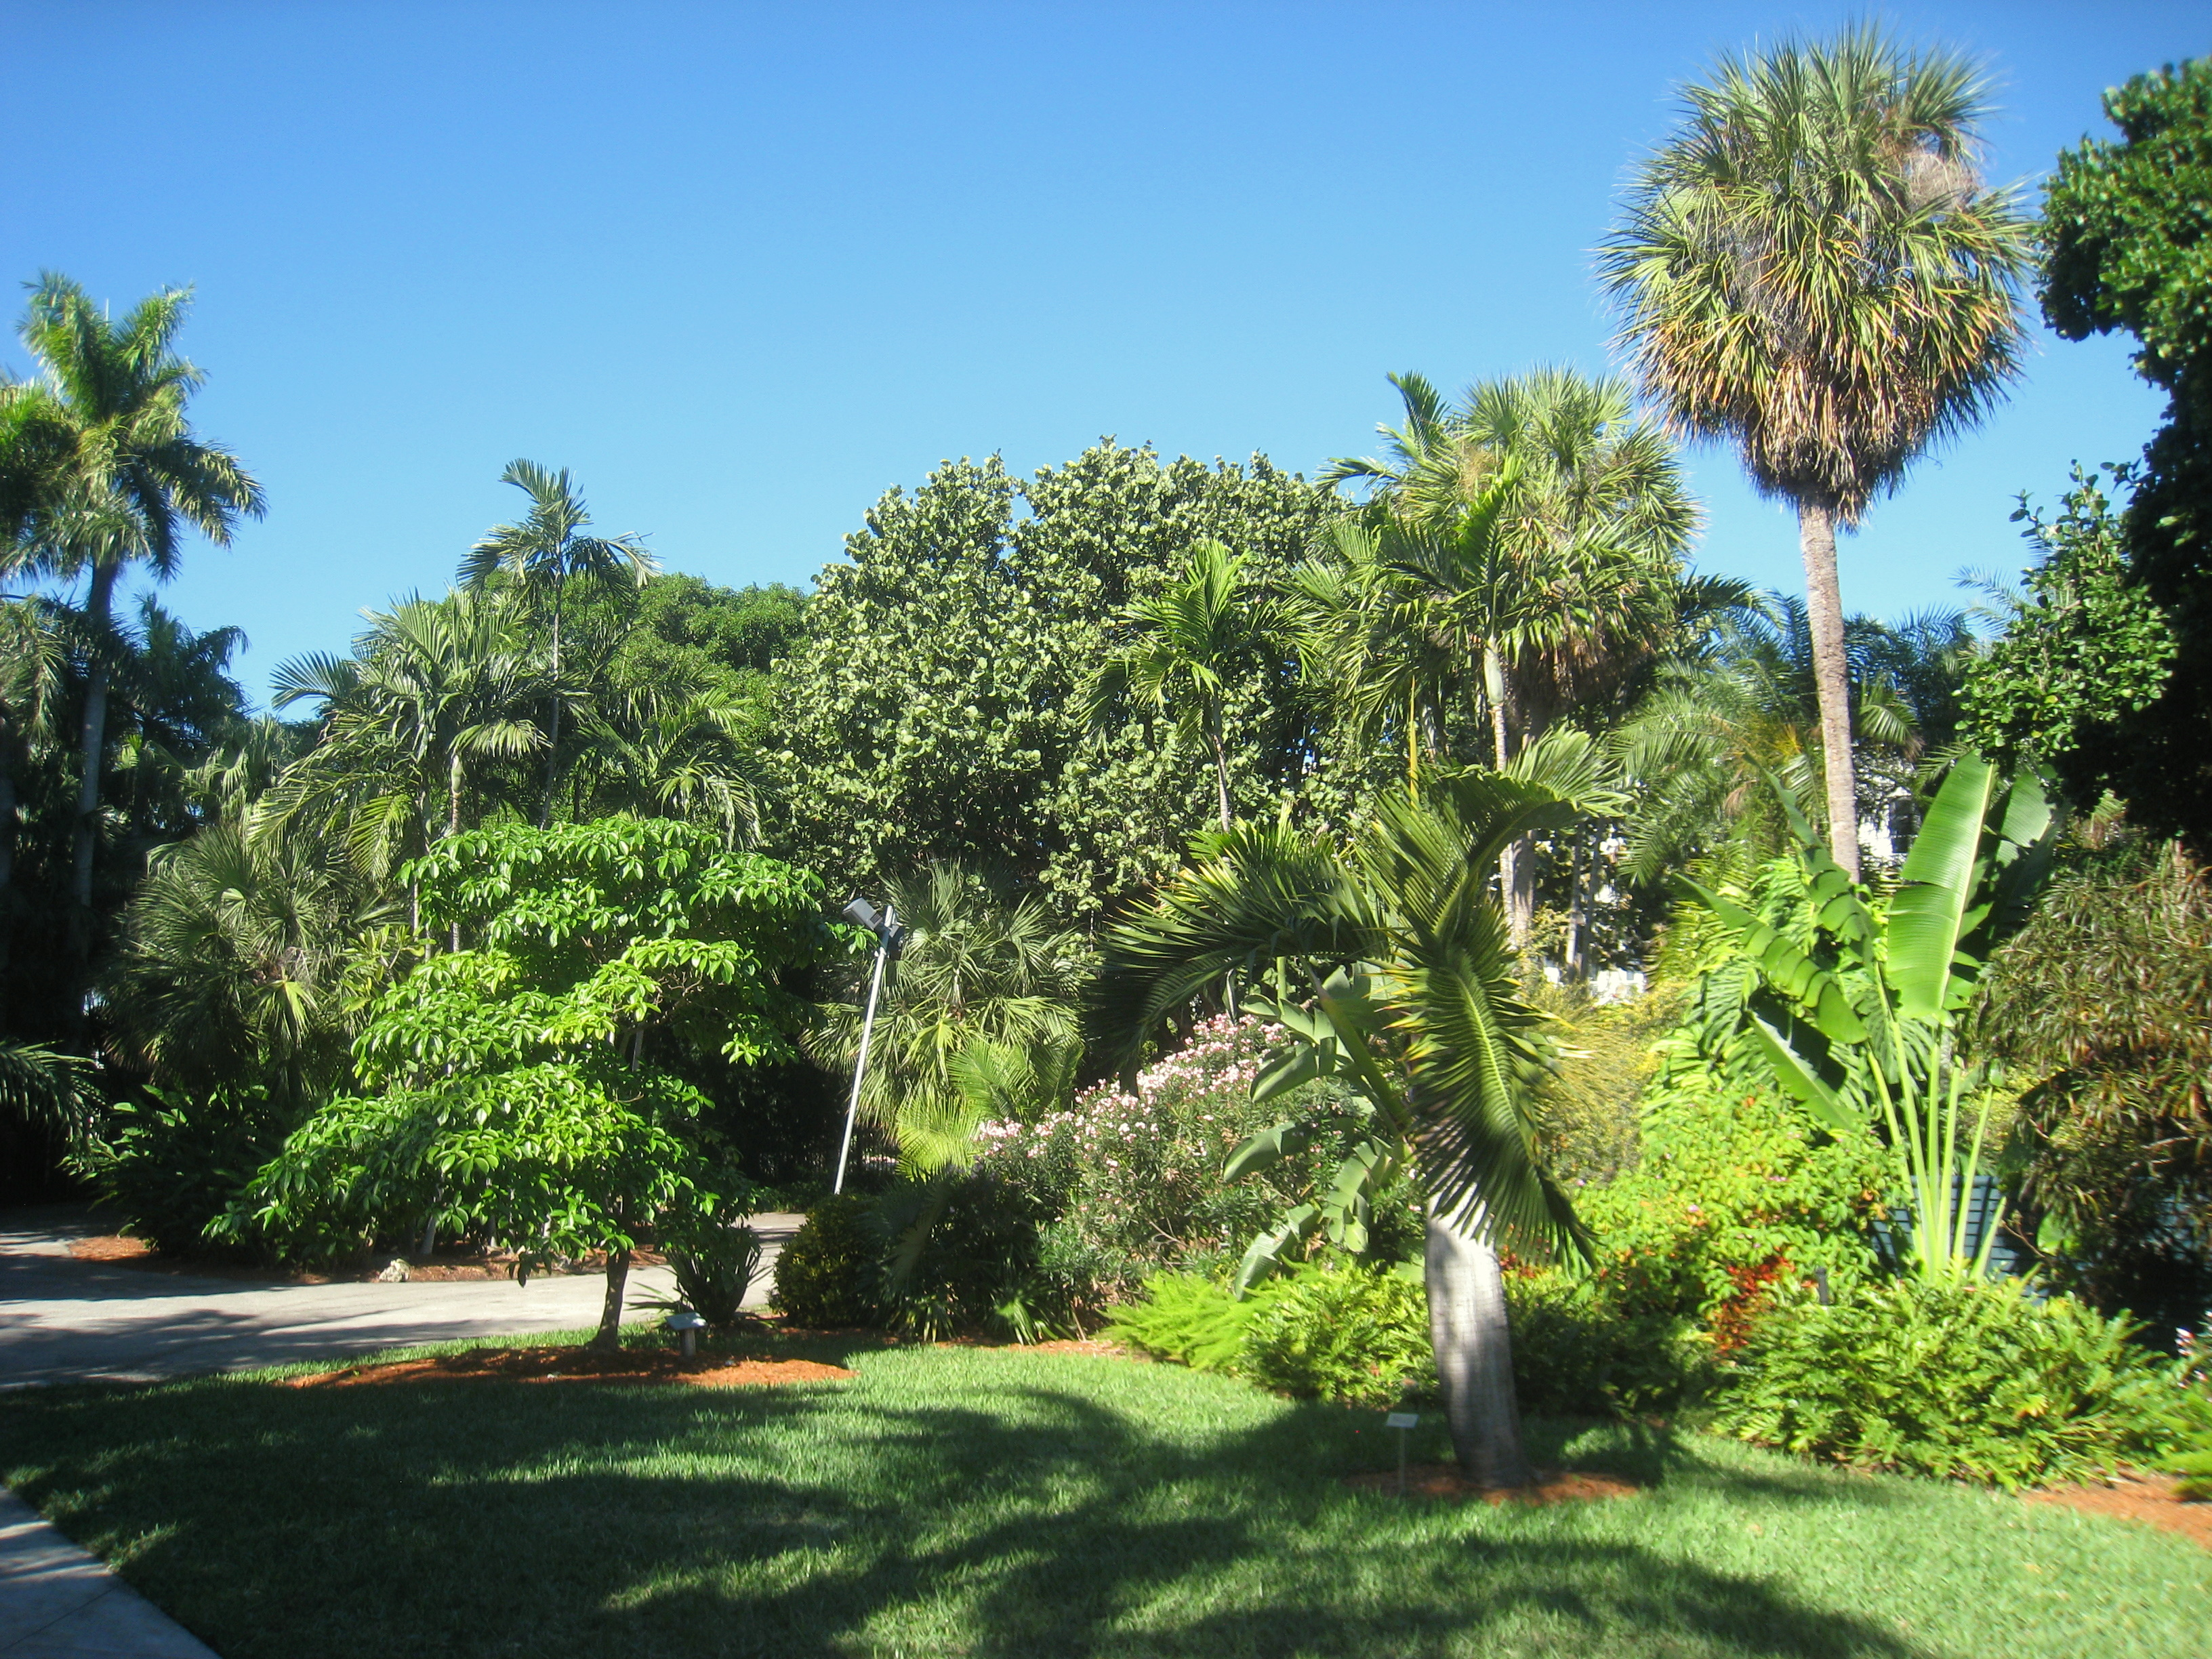 File:Miami Beach Botanical Garden   IMG 8013.JPG